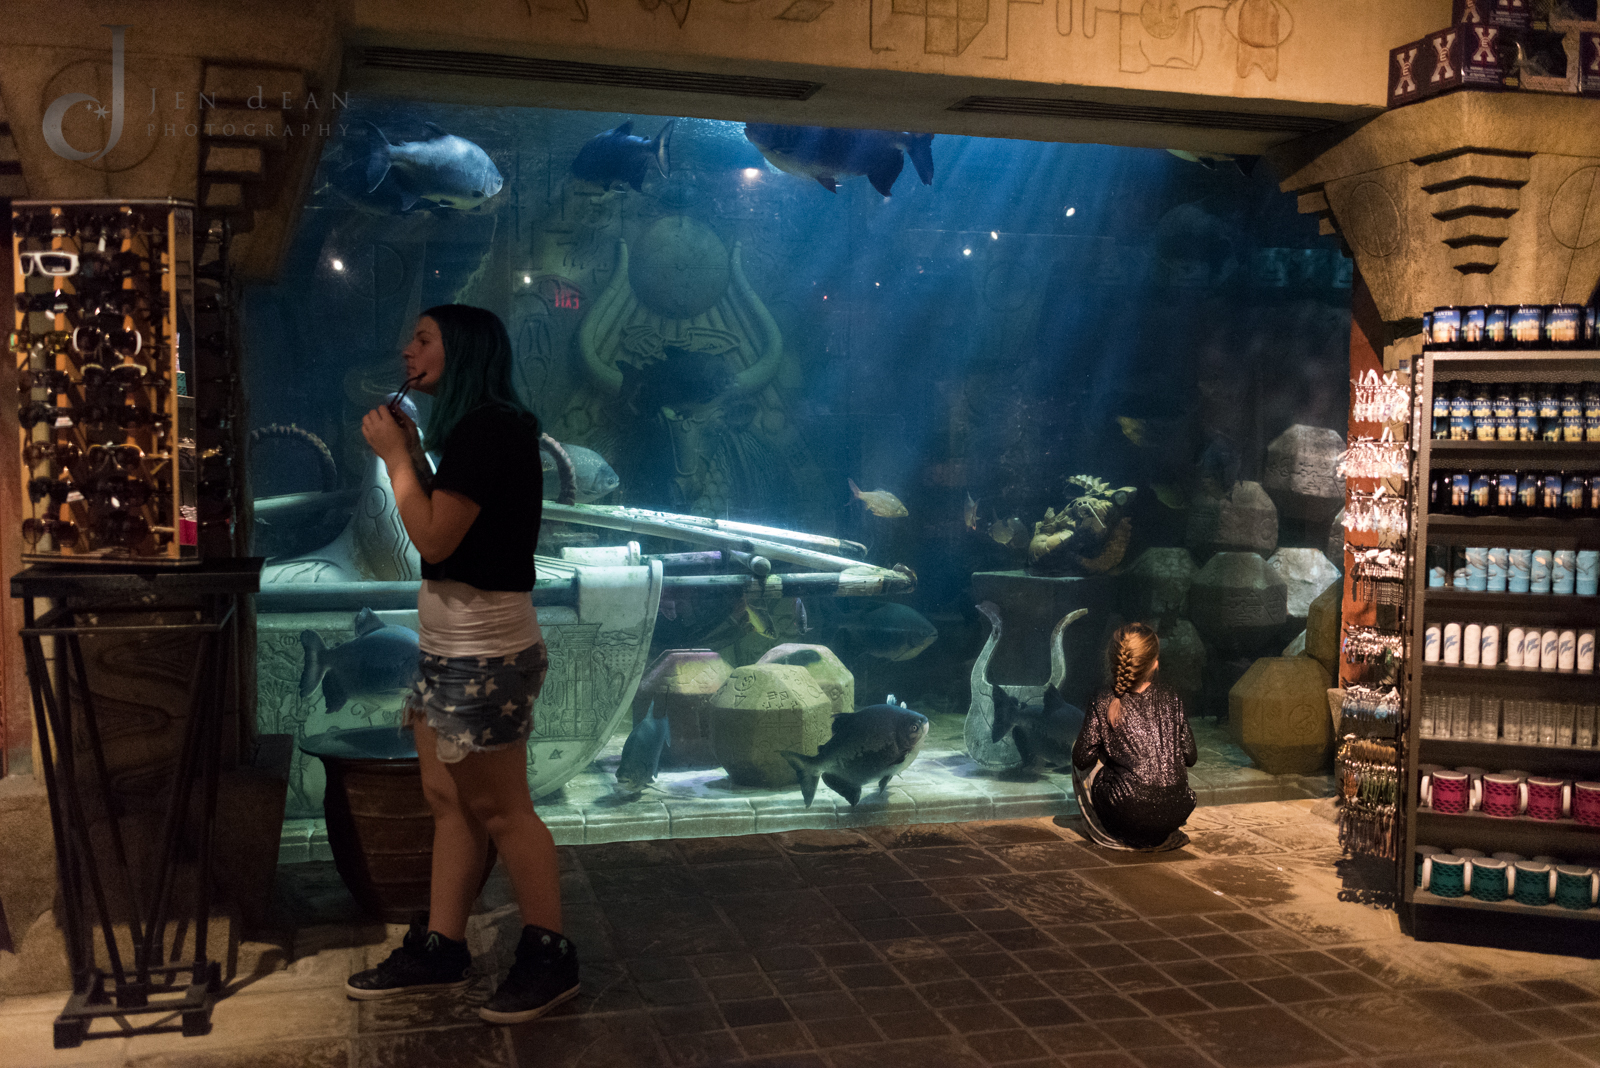 Totally surreal to shop in an aquarium!